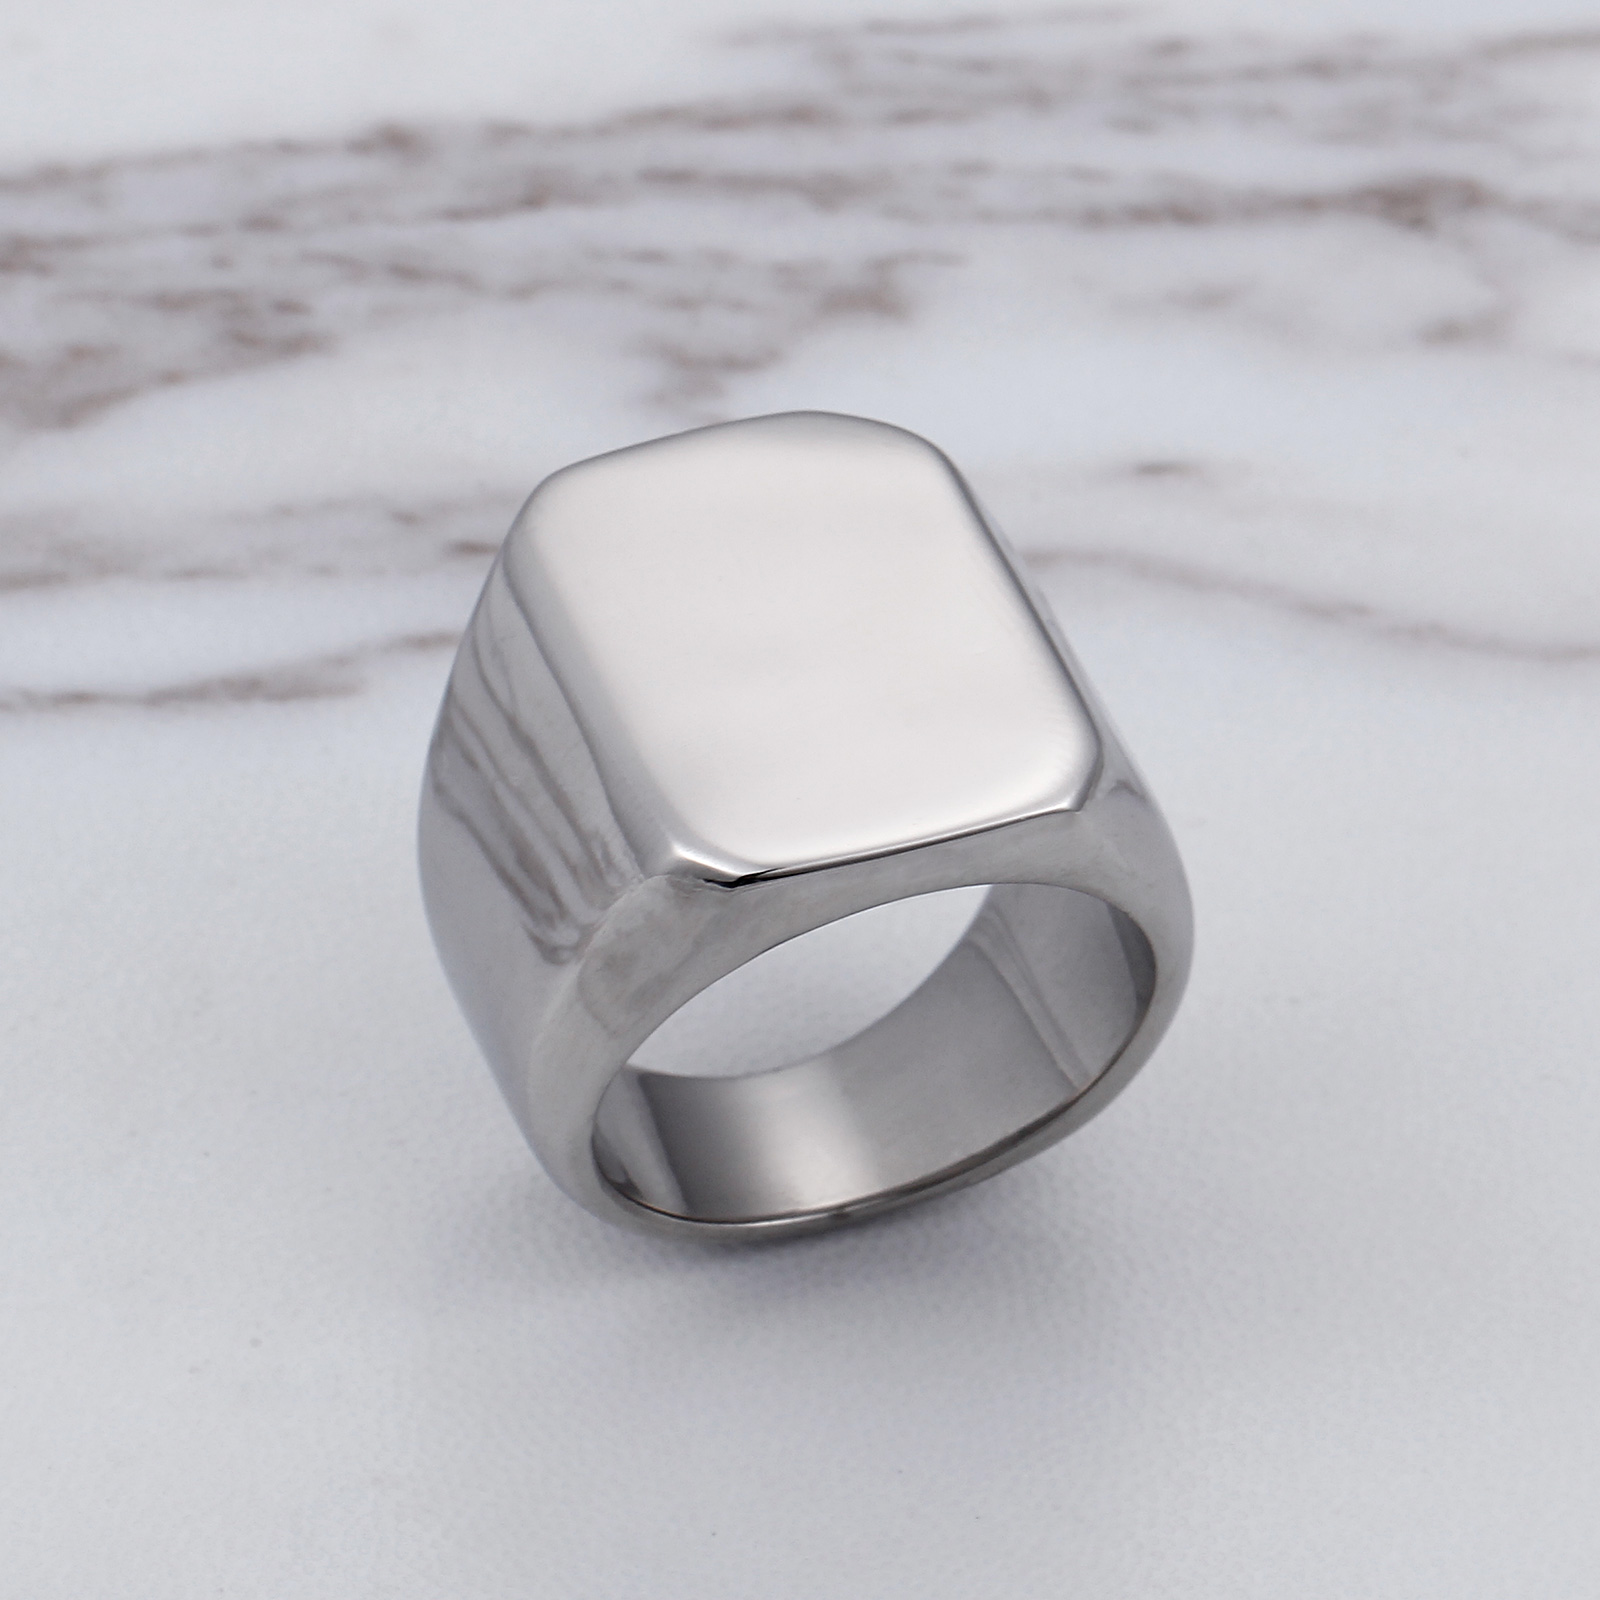 Fashion Charms Korean Elegant Rings Men 316L Titanium Stainless Steel Chic Silvery Color Men Rings Fashion Jewelry Accessores